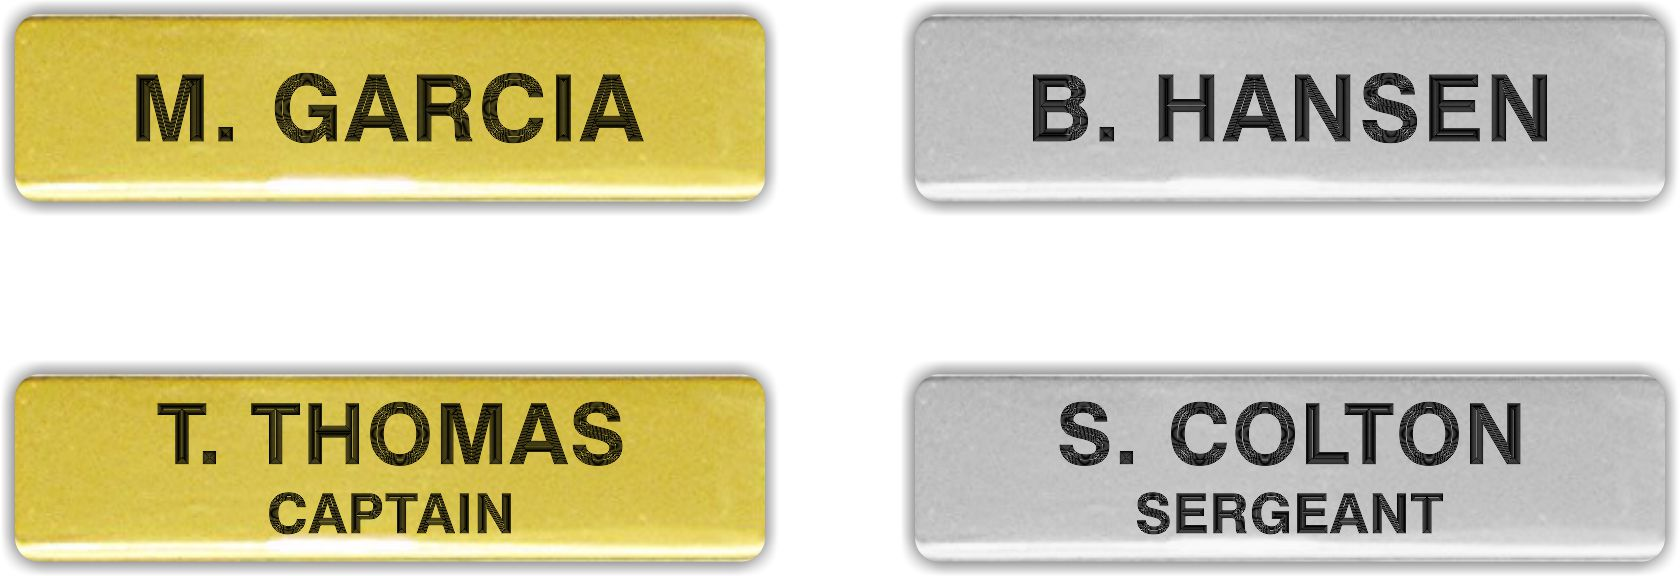 Name Badges for Law Enforcement & Fire/EMS